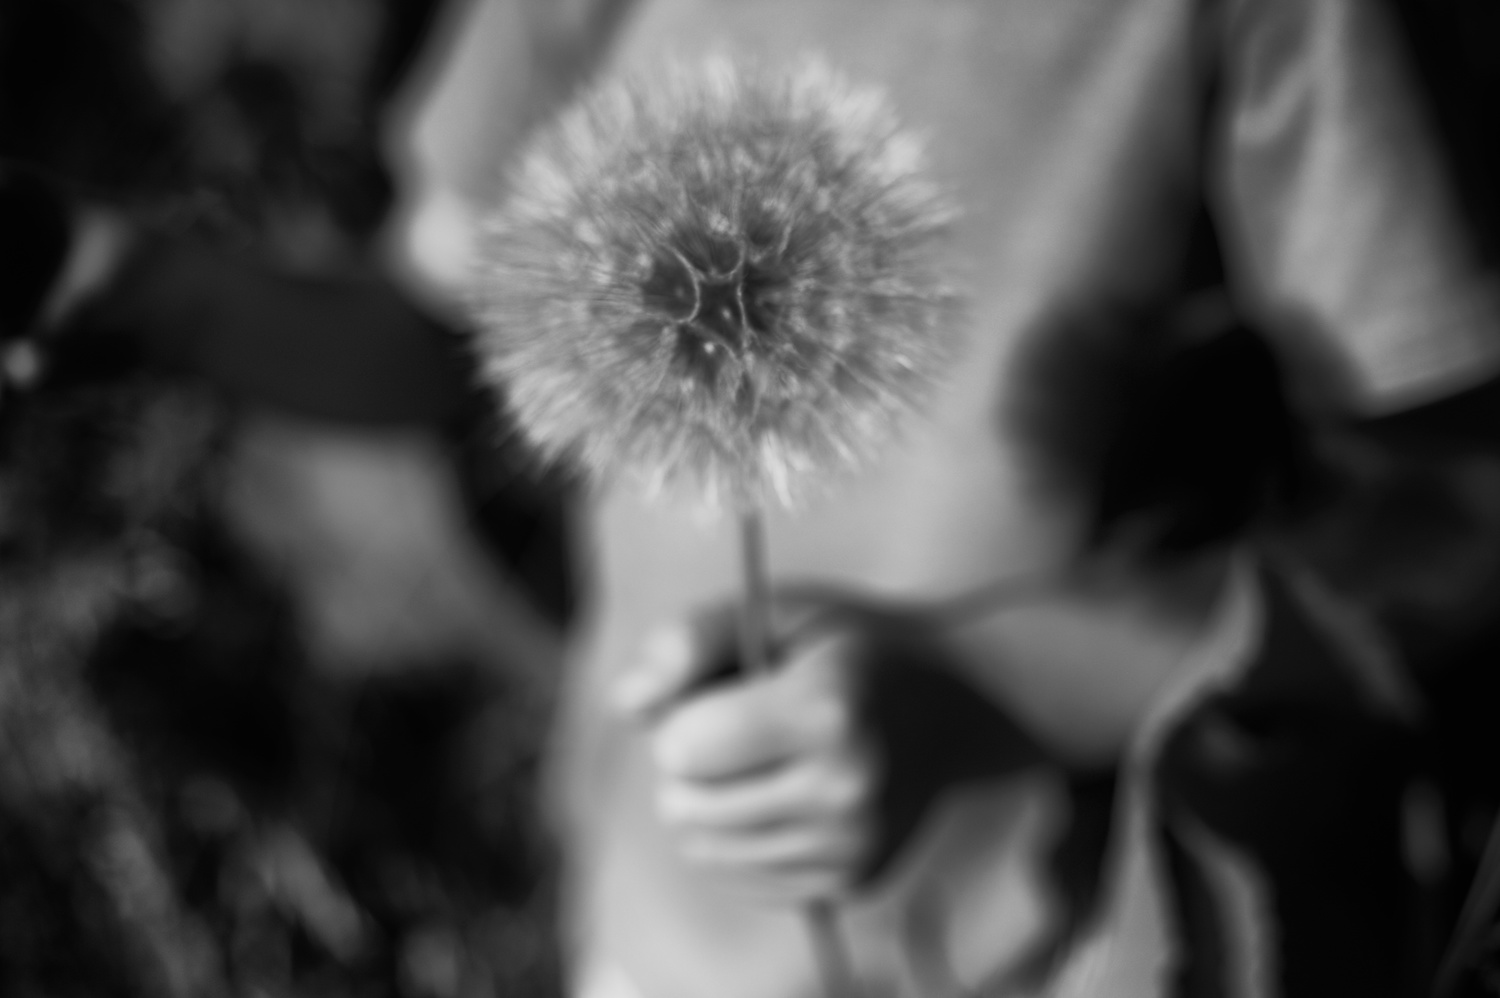 Black and White Photograph, Dandelion, Midwest, Interior Design, Wall Art